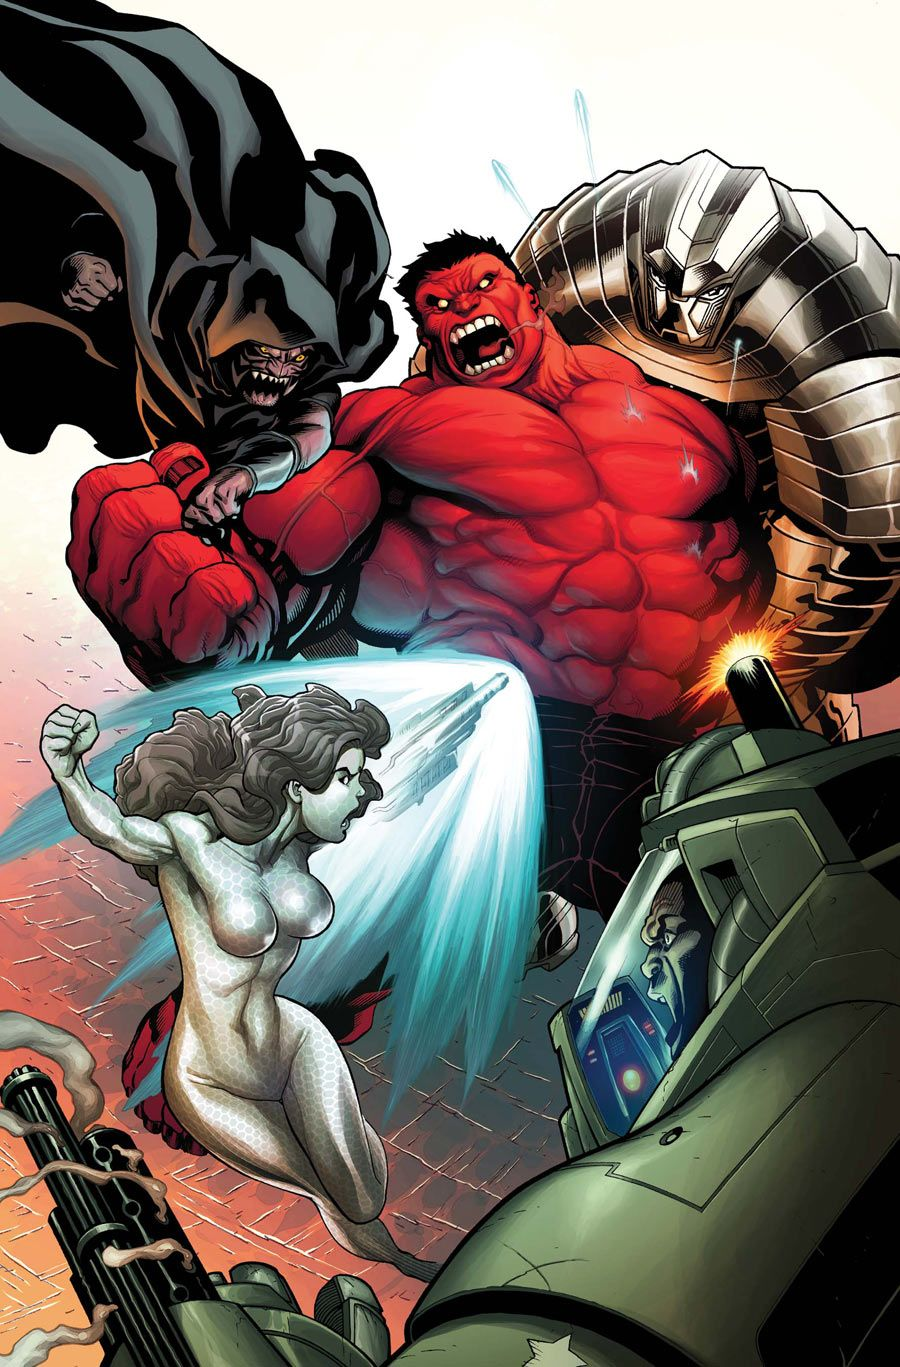 Red hulk by gabriel hardman movie posters pinterest - Pictures of red hulk ...